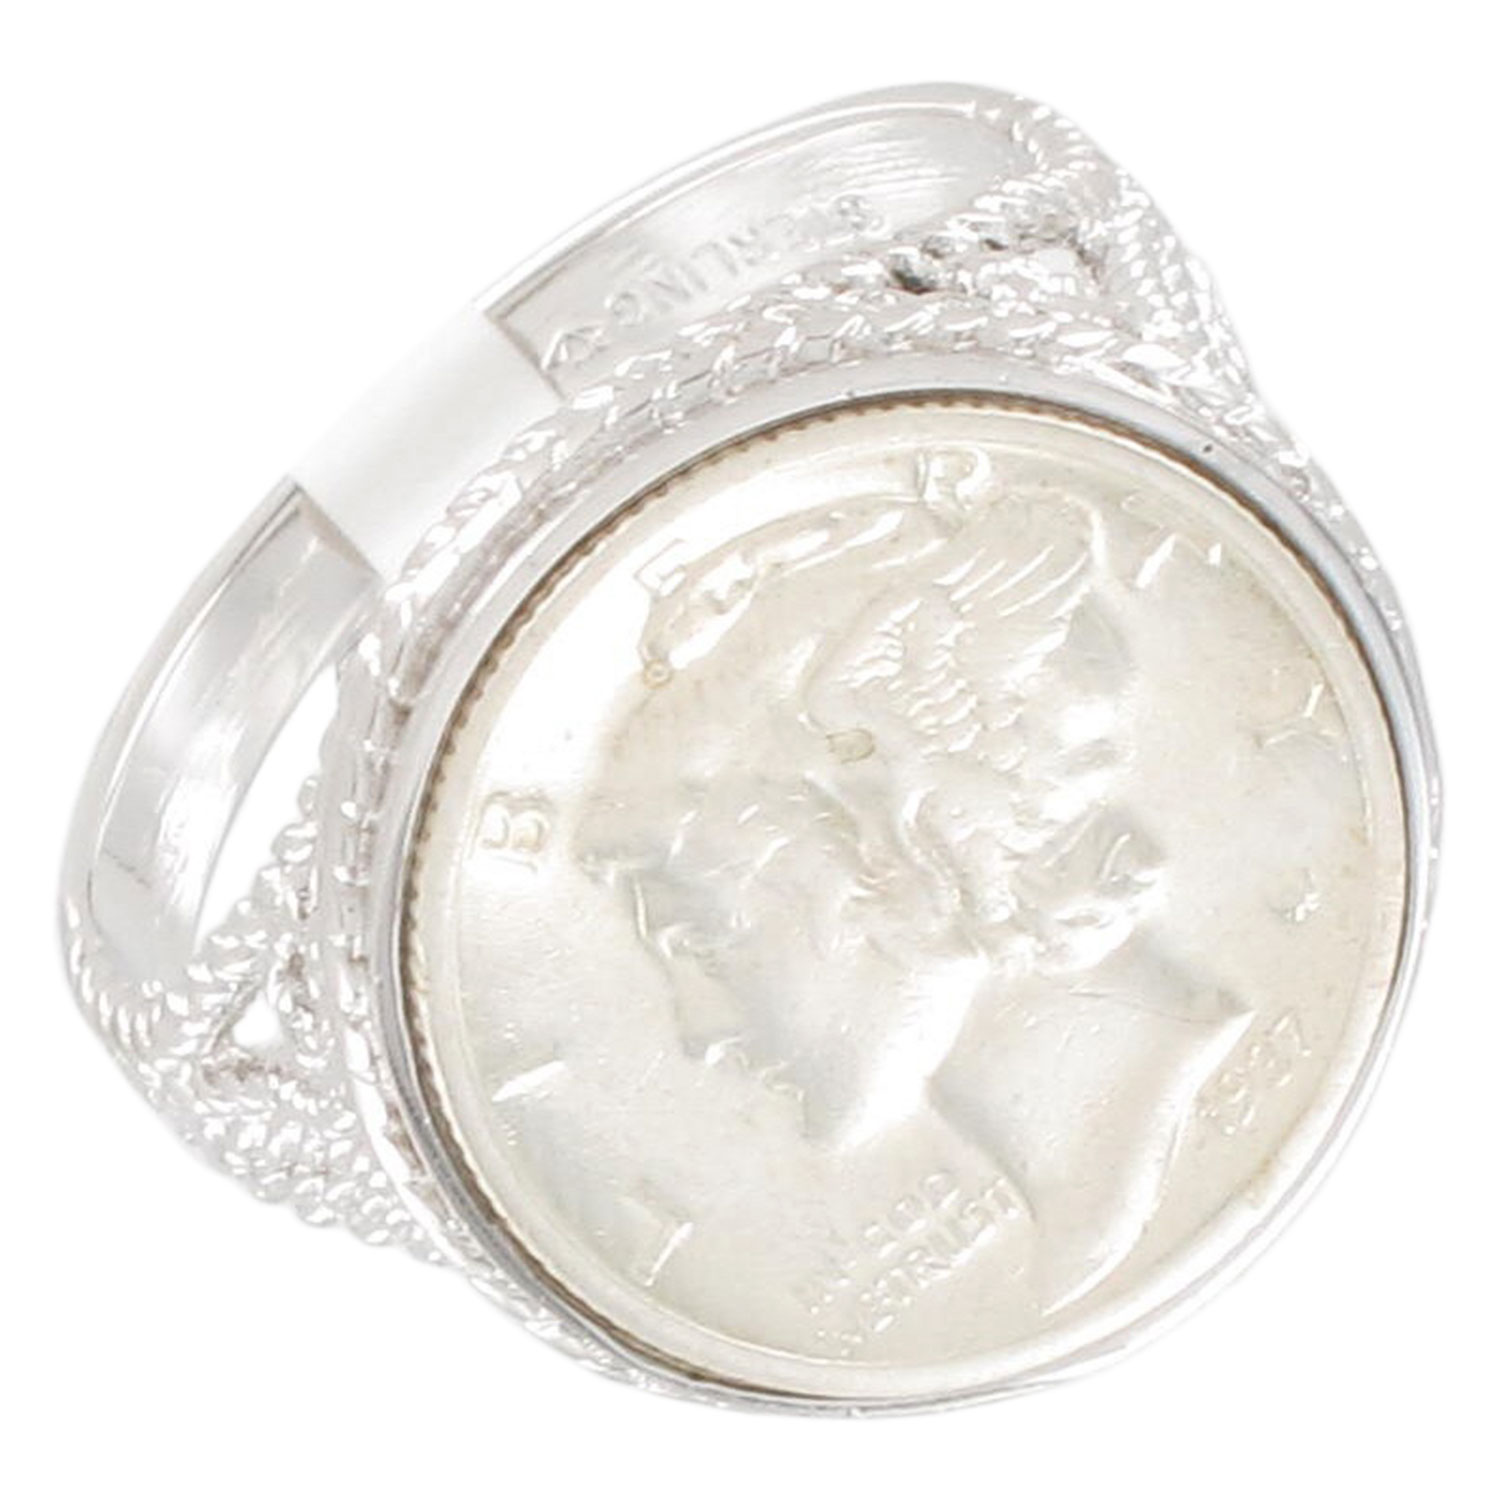 Usa Coin Ring Sterling Silver 925 Mercury Dime  Choose. South Sea Pearl Engagement Rings. 3 Stone Infinity Engagement Rings. Rectangular Wedding Rings. Diamond Micro Pave Engagement Rings. Precious Wedding Rings. Jewelry Rings. Gold Jewellery Rings. Play Rings